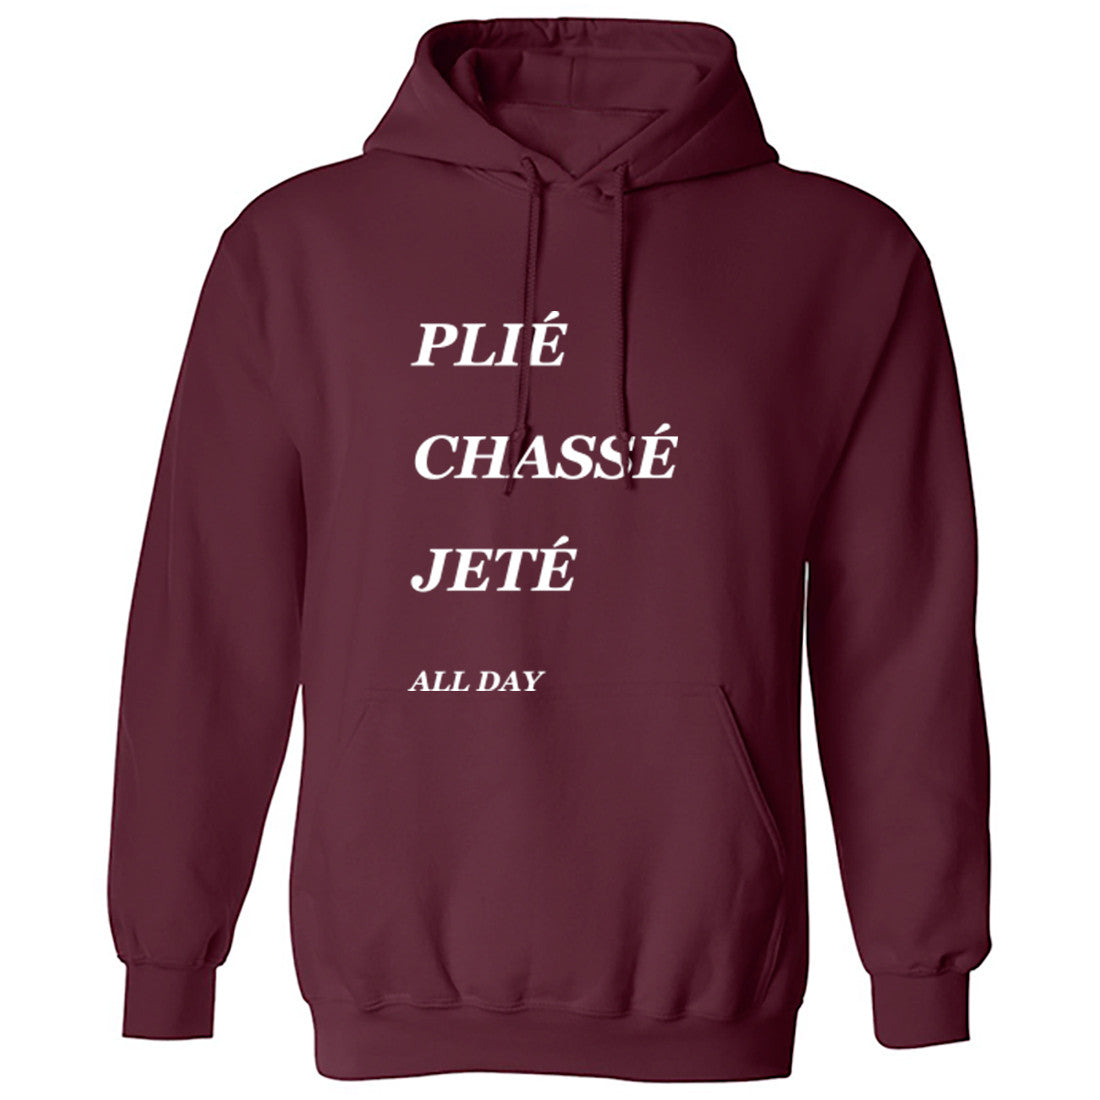 Plie Chasse Jete All Day Unisex Hoodie K0299 - Illustrated Identity Ltd.